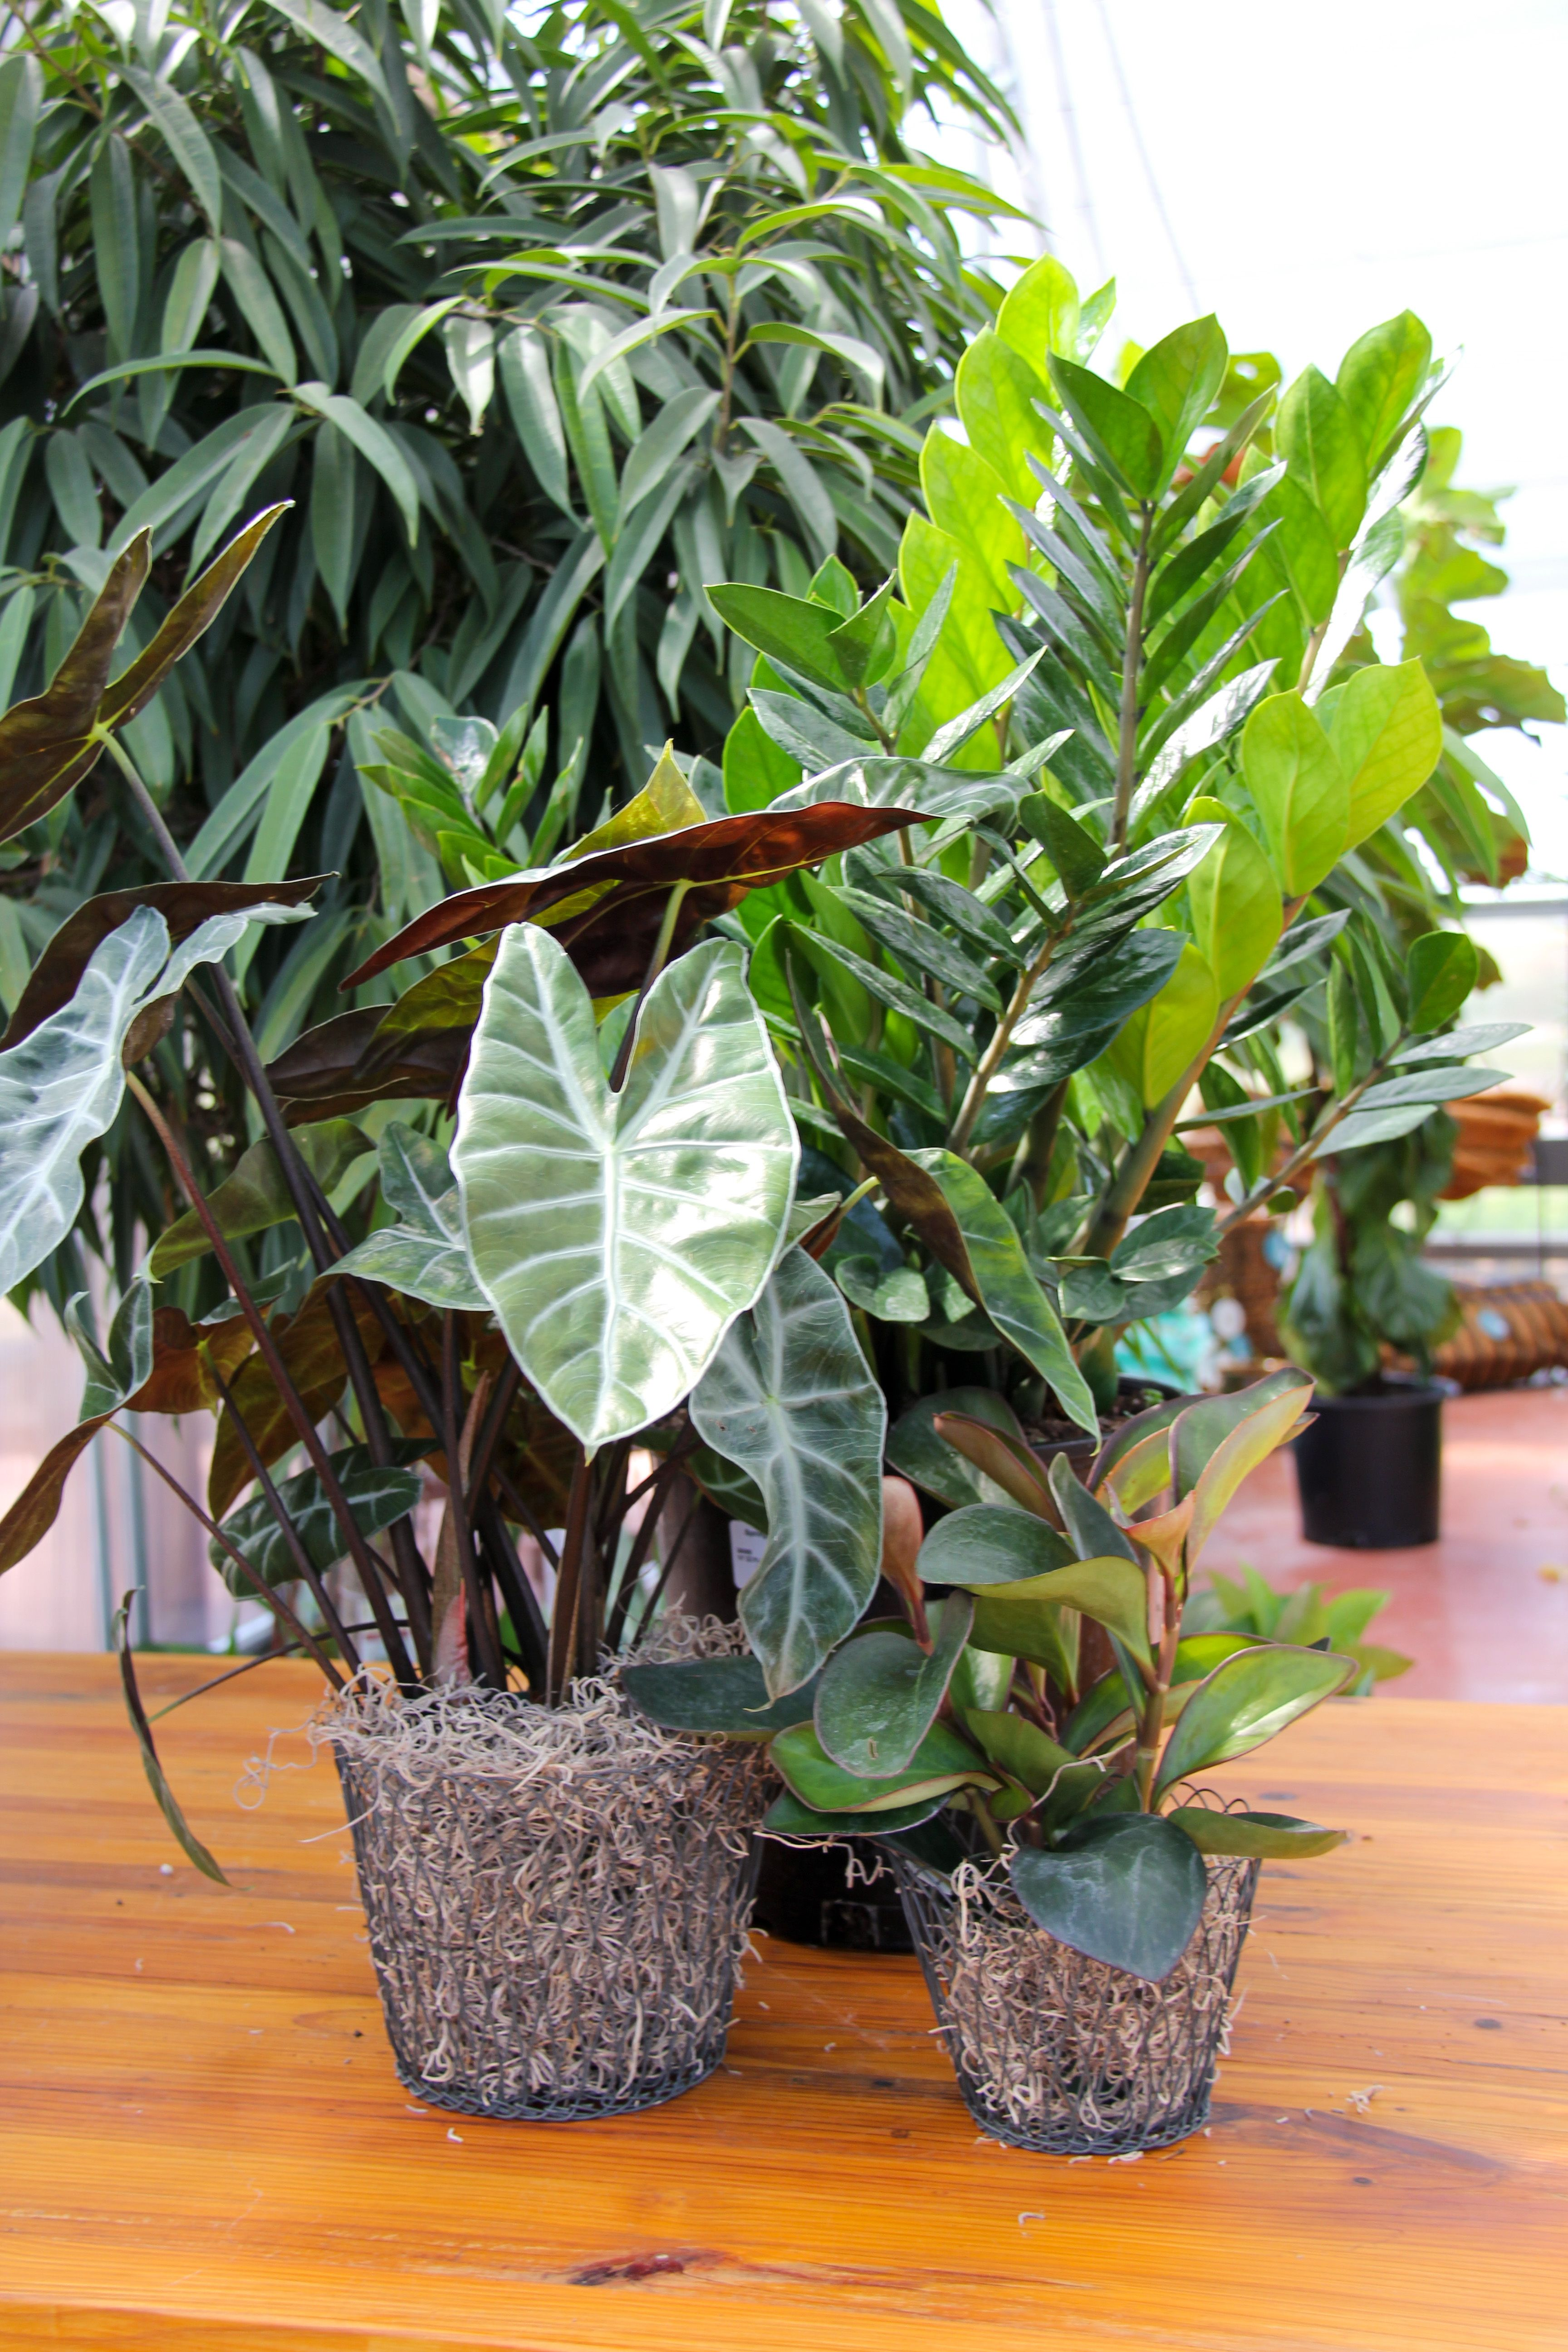 House Plant Favorites: ZZ Plant, Alocasia Morocco, and ... on order birds of paradise plant, zamiifolia house plant, spider house plant, fig house plant, houseplants plant, croton house plant, banana house plant, cast iron plant, rubber house plant, hydrangea house plant, peperomia house plant, fern house plant, zi zi plant, arrowhead house plant, umbrella house plant, avocado house plant, eternity plant, house plant identification succulent plant,